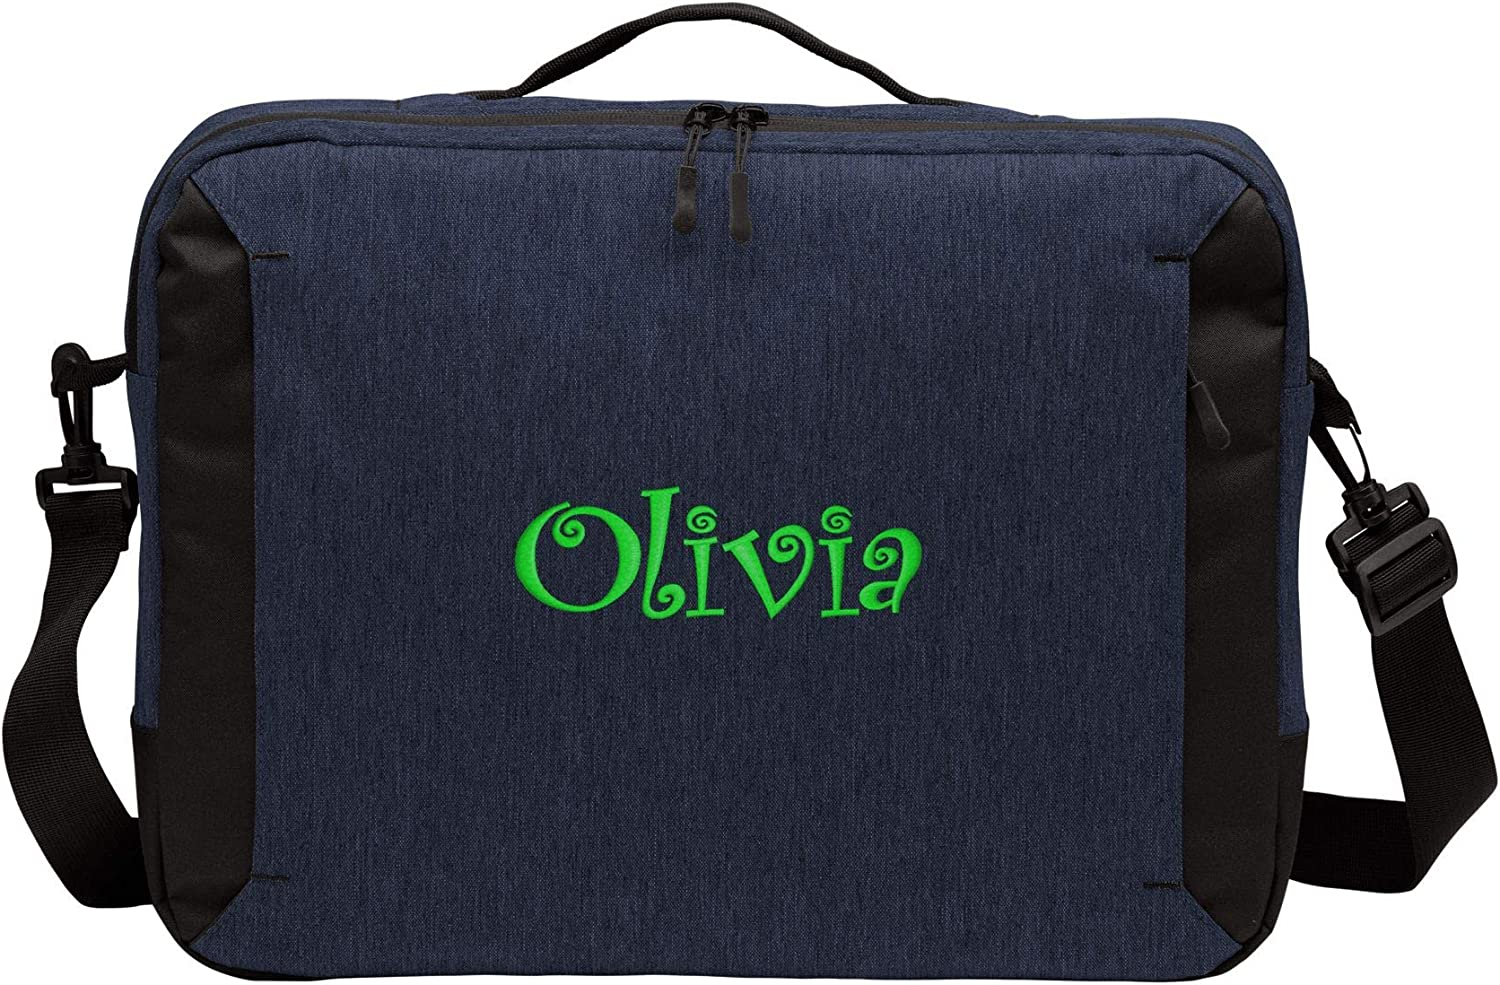 Personalized Monogrammed Laptop Bag with Custom Text Navy Heather Fashionaable Shoulder Bag with Customizable Embroidered Monogram Design